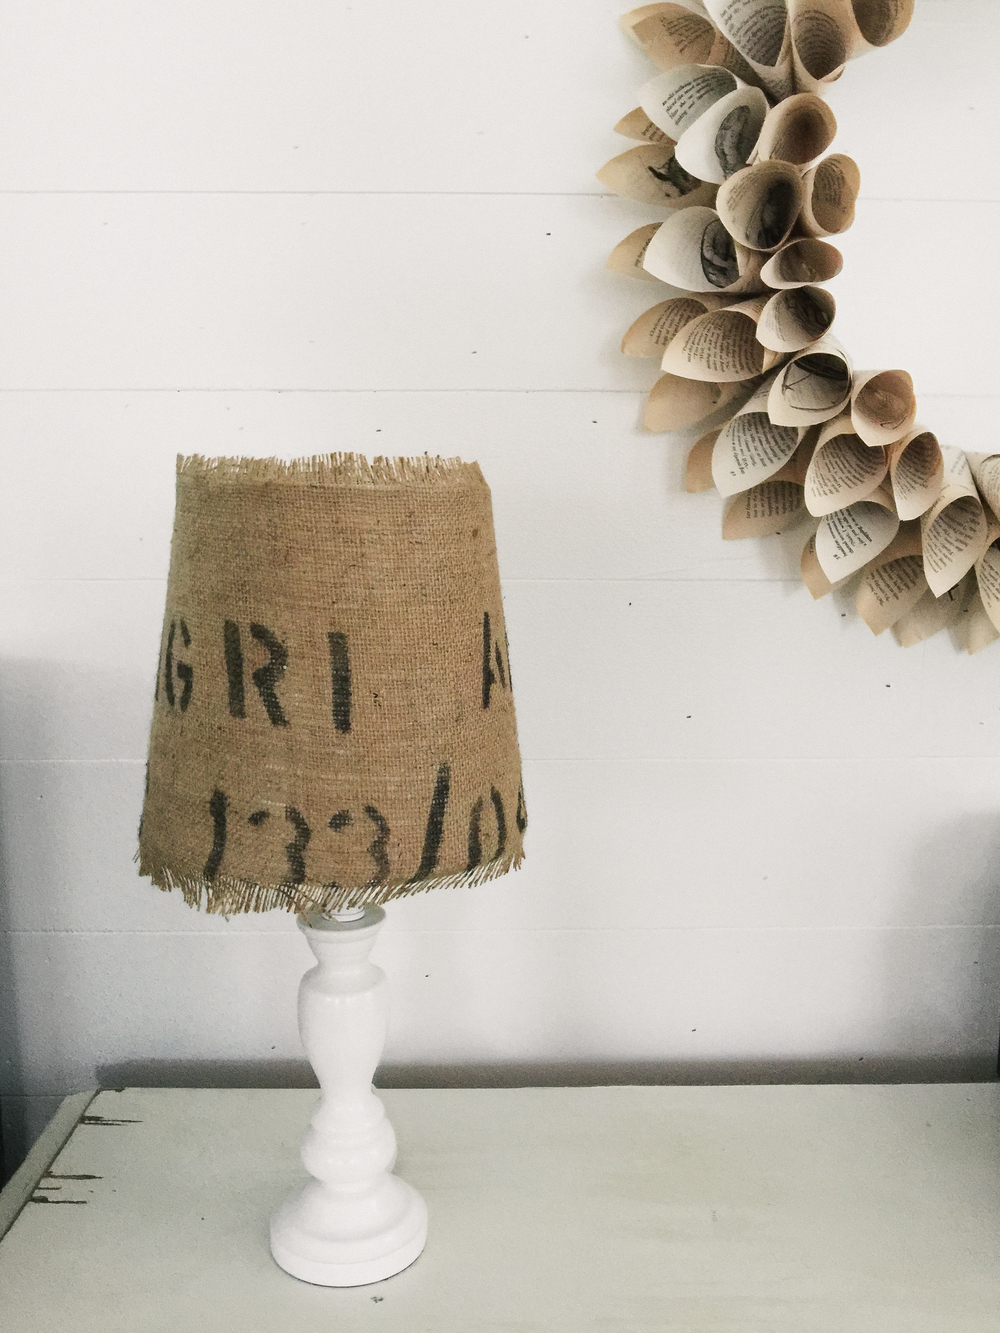 shabby chic | DIY book page wreath + burlap lamp shade